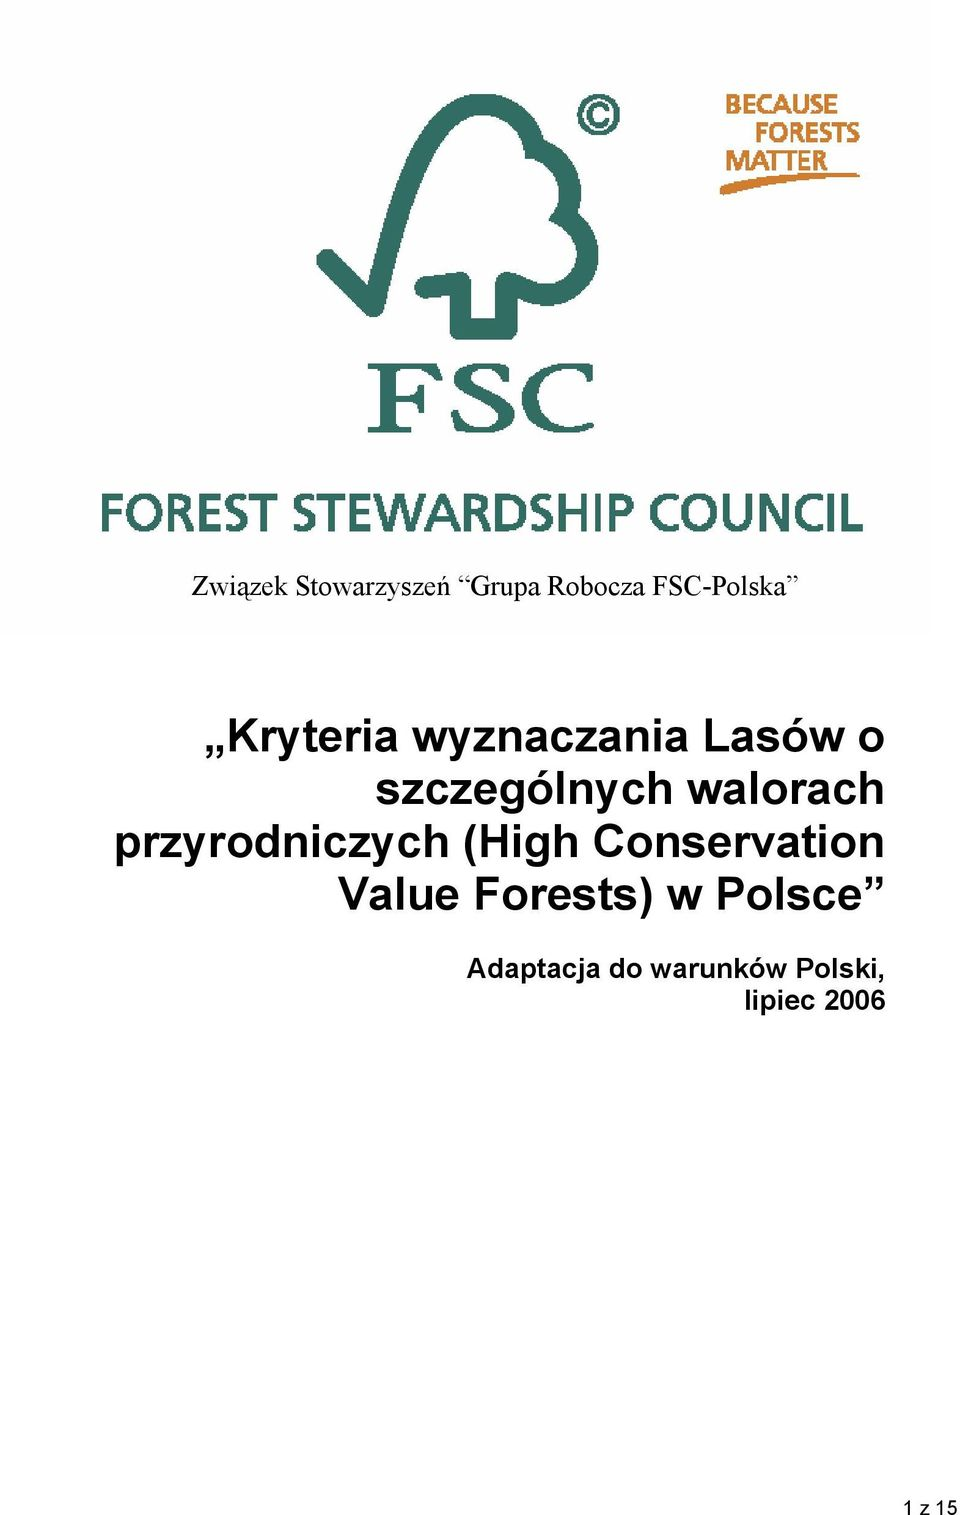 przyrodniczych (High Conservation Value Forests) w